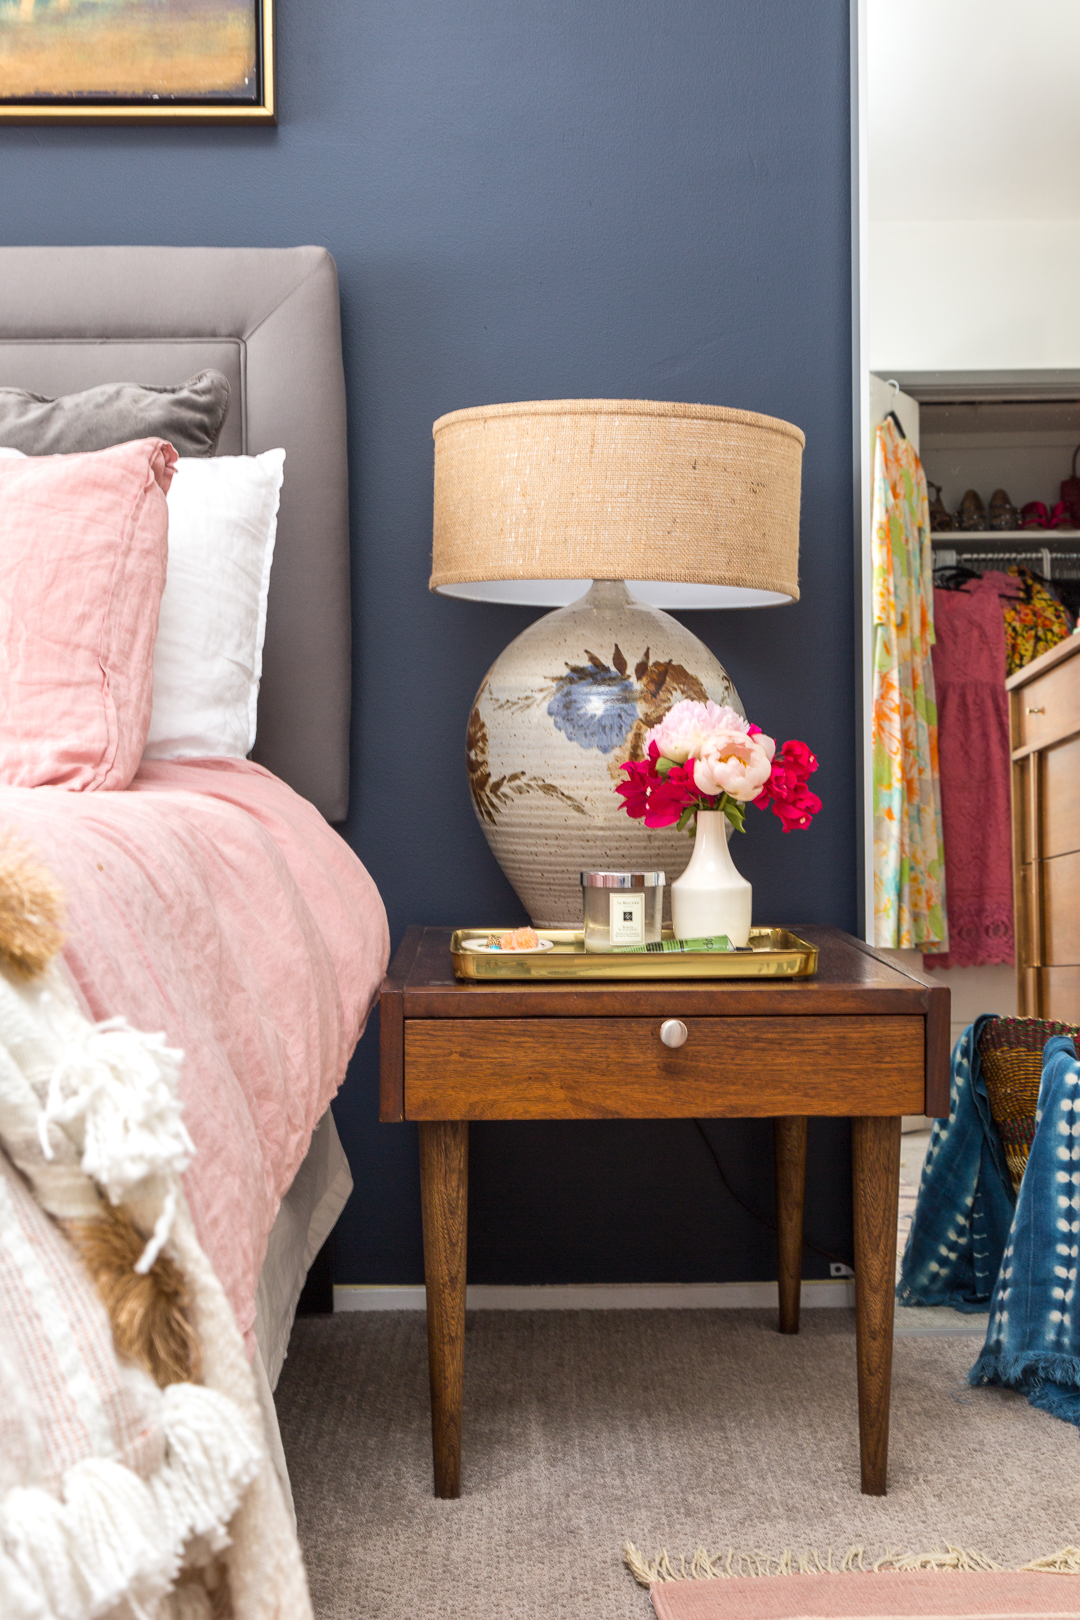 Boho Chic Navy and Pink Bedroom  A Vintage Splendor at Home